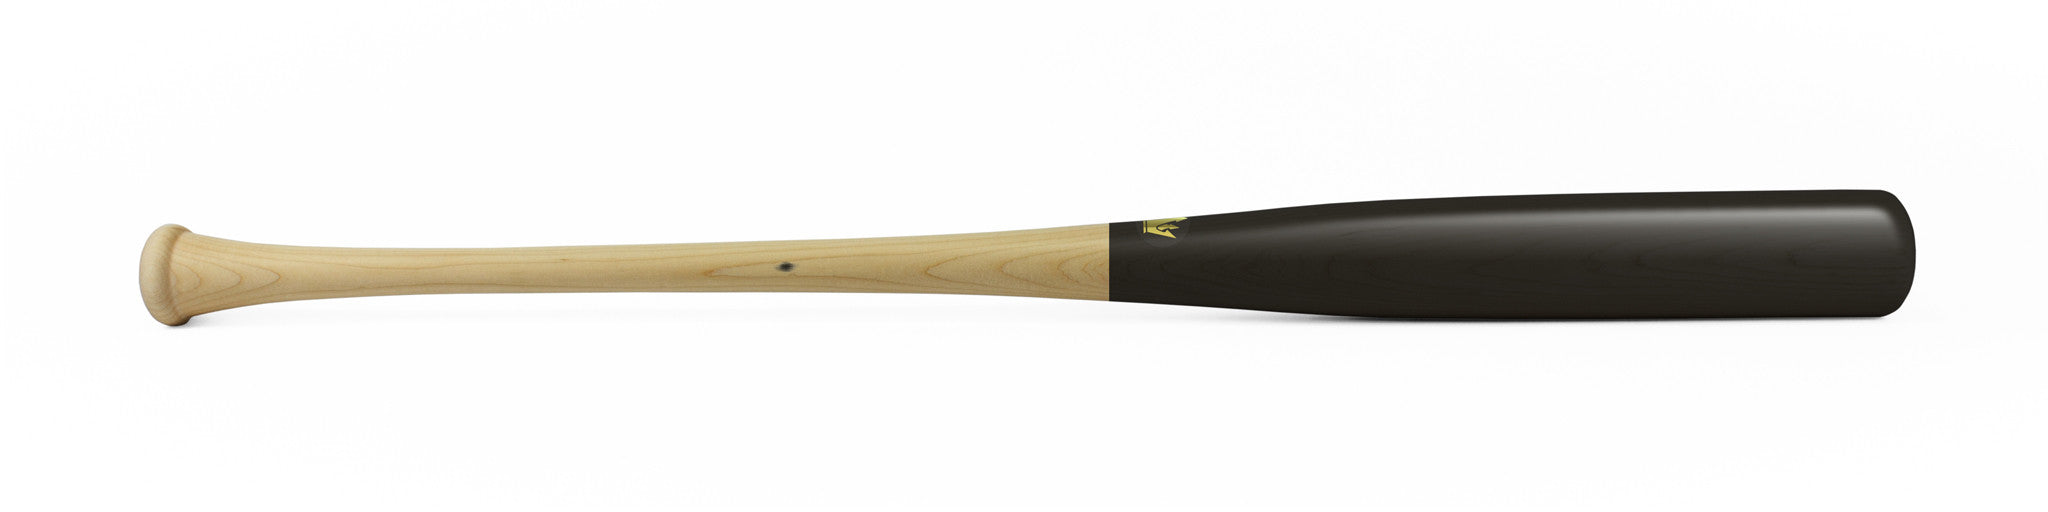 Wood bat - Birch model D25-P Black Standard - 12